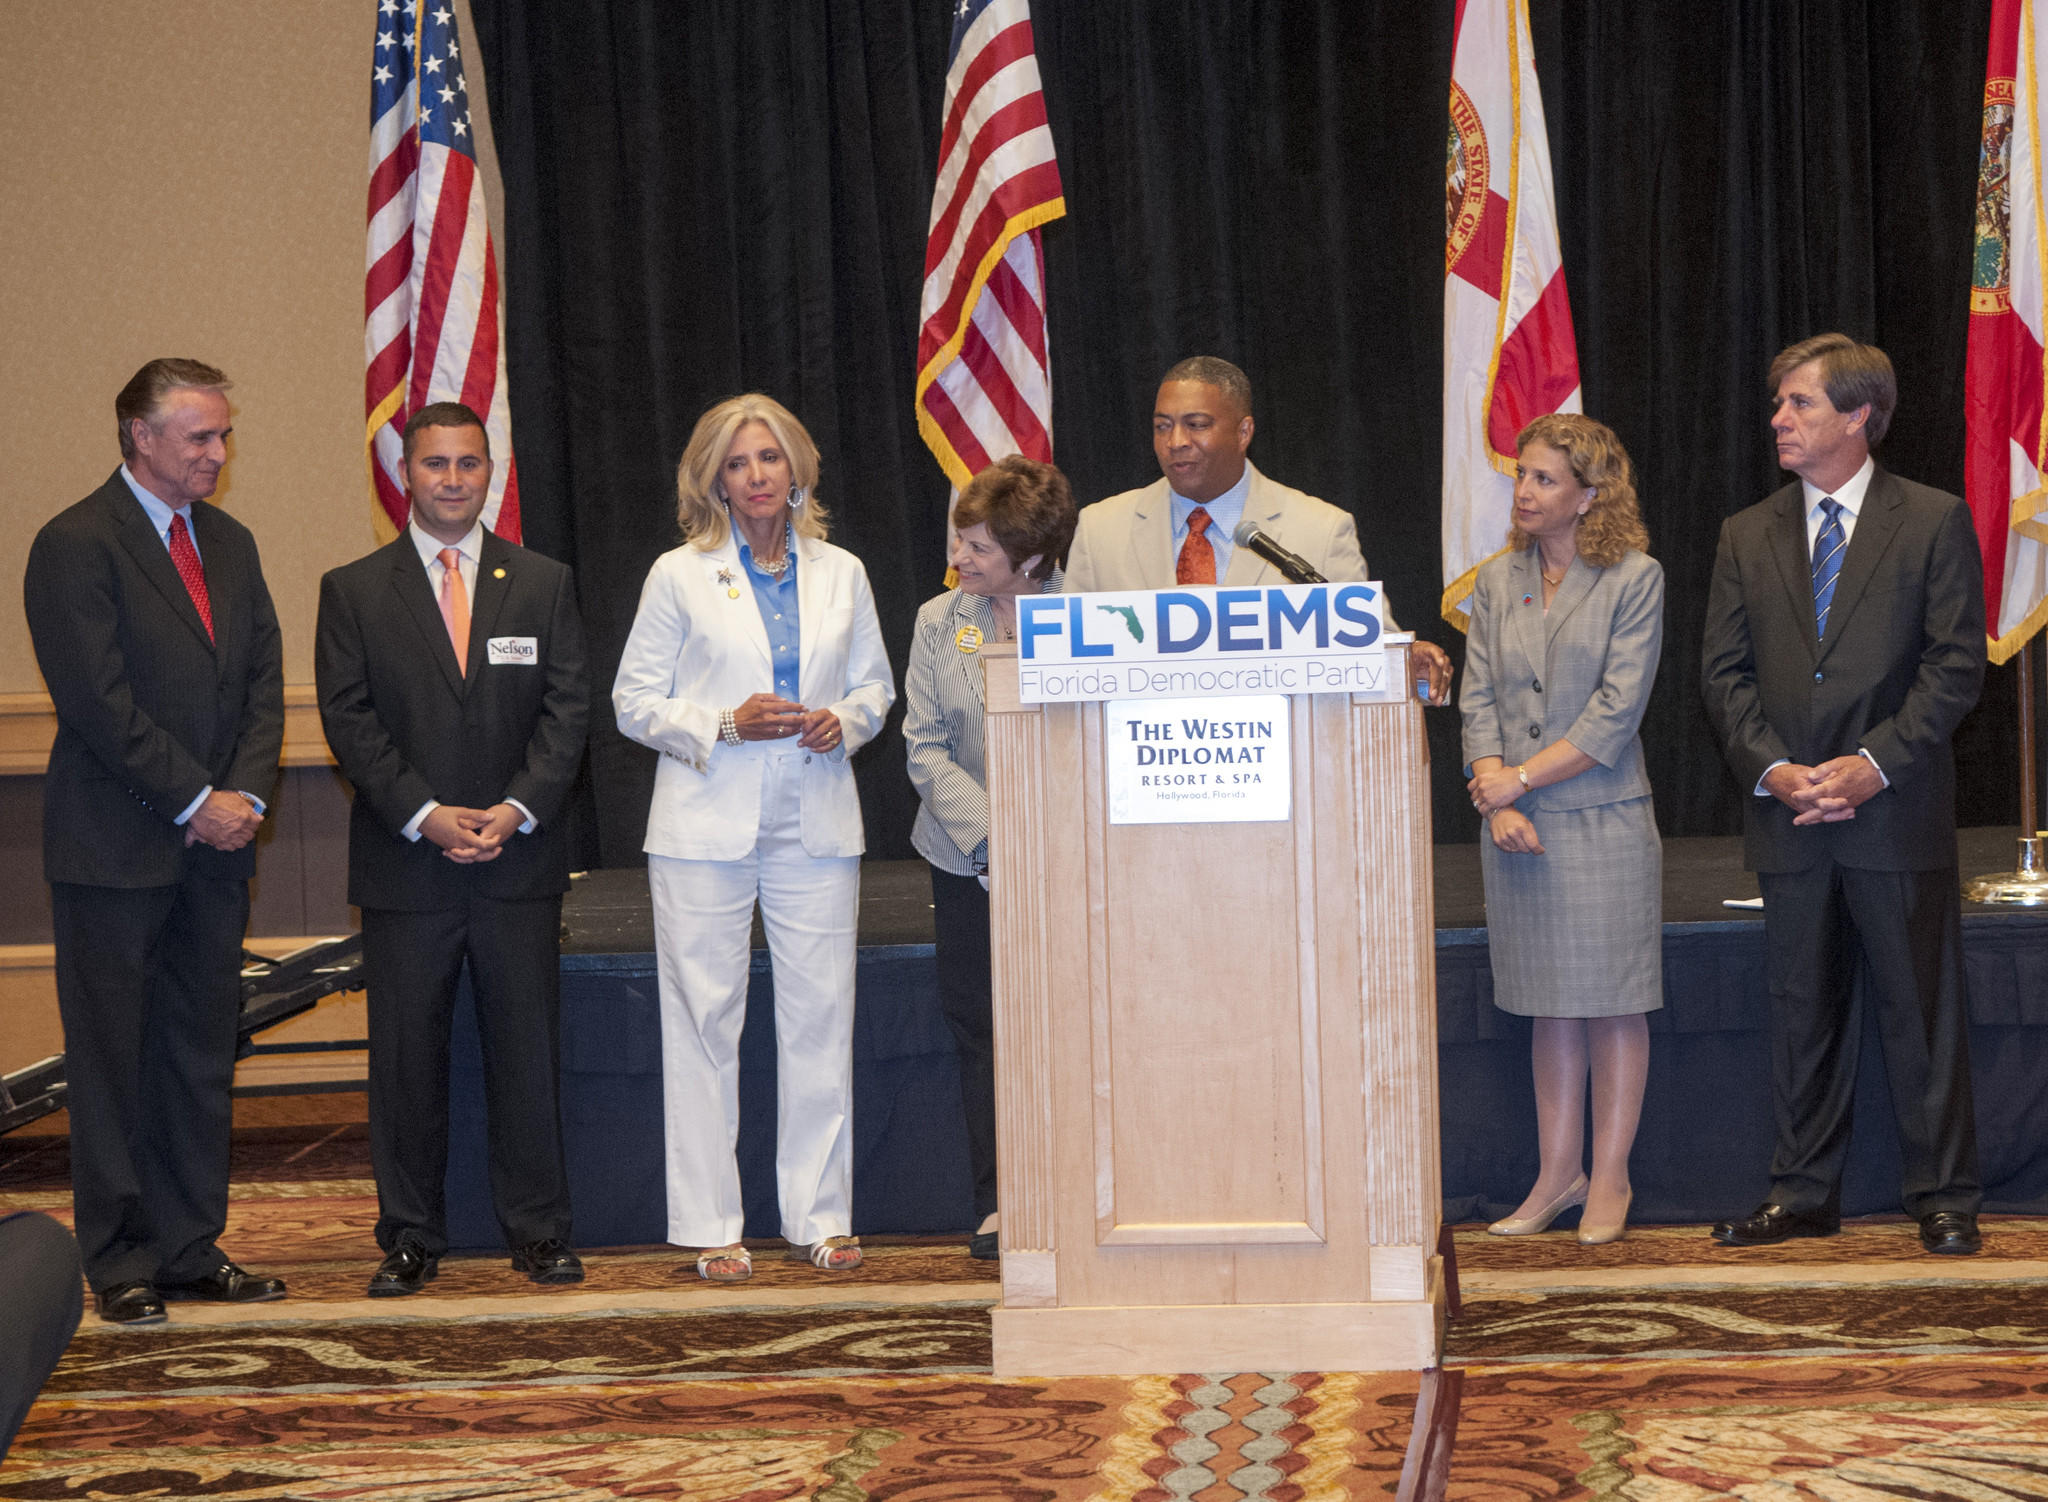 Candidates from left, Frank Bruno, Darren Soto, Maria Sachs, are introduced by then-Senate Minority Leader Nan Rich and Senator Chris Smith as Debbie Wasserman Schultz and then-Florida Democratic Party Chairman Ron Smith look on at a press conference before the Florida Democratic Party Jefferson Jackson Dinner at the Westin Diplomat Hotel in Hollywood.